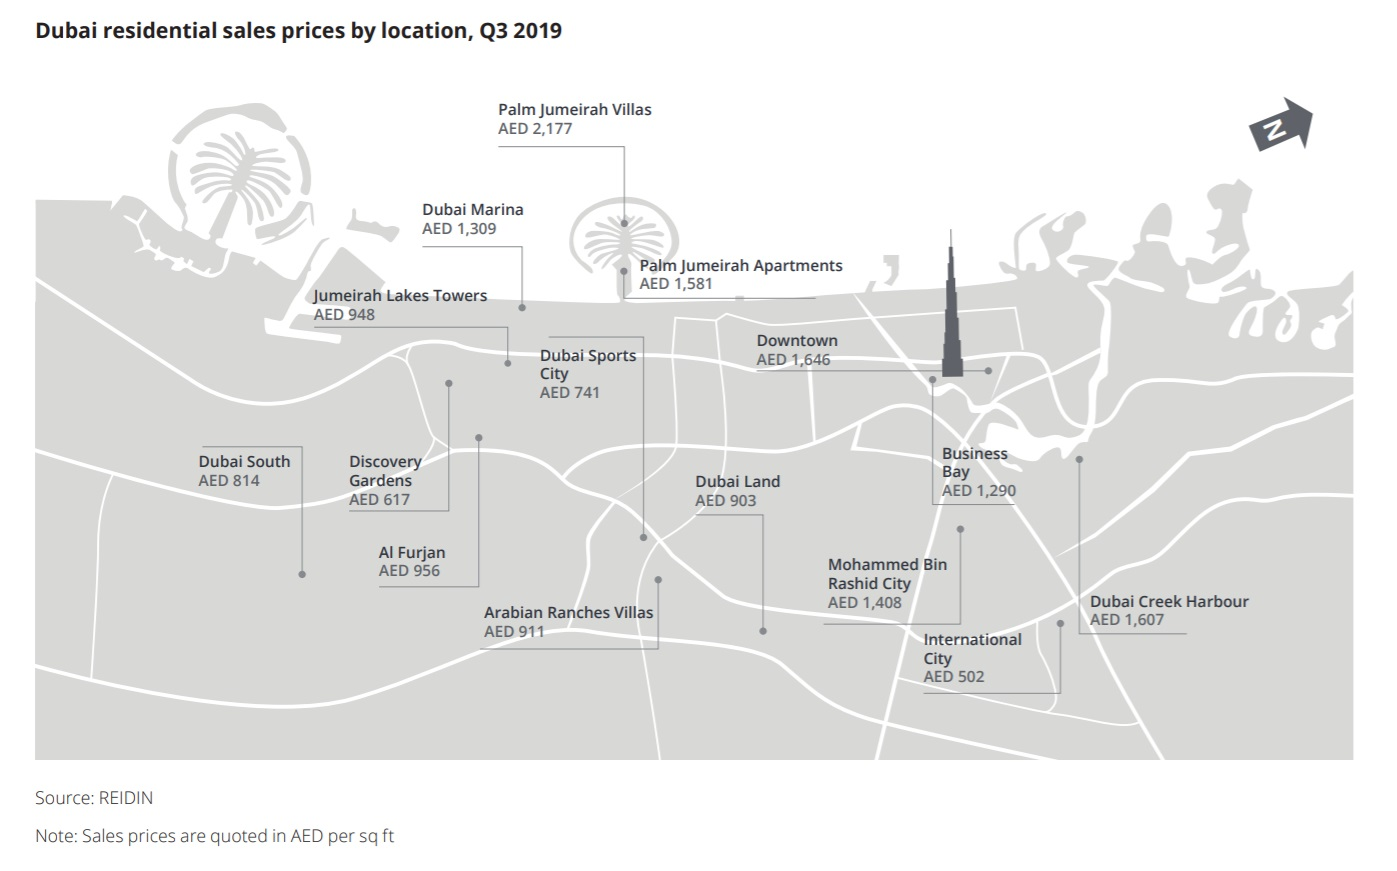 Dubai residential sales prices by locations, Q3 2019